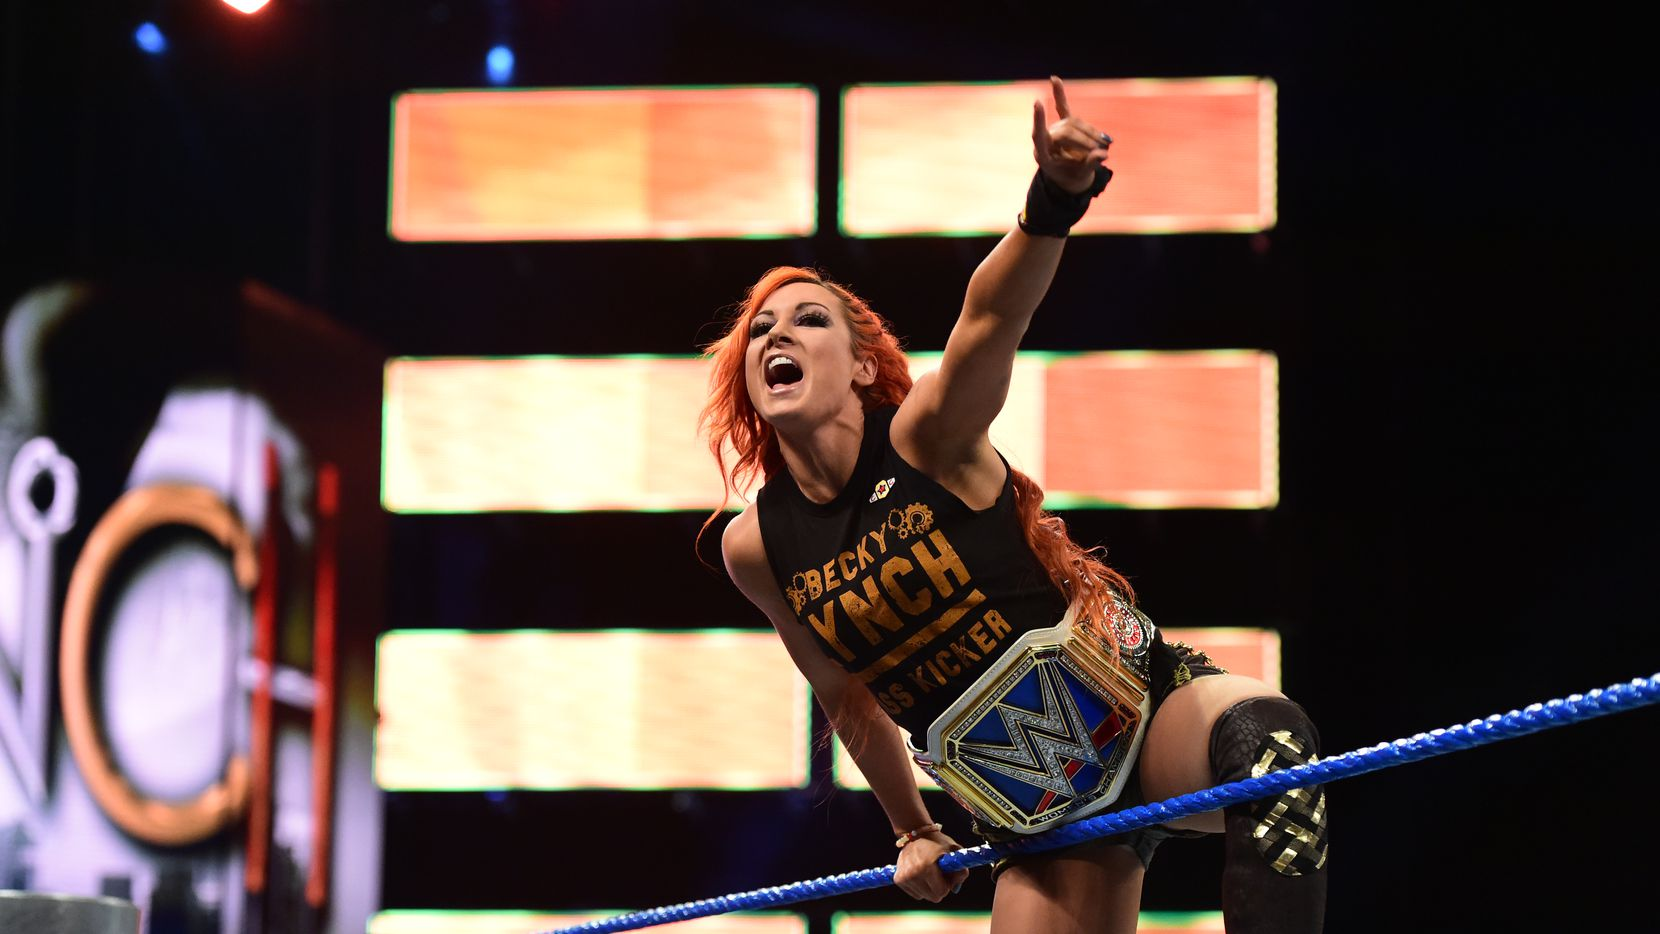 WWE SmackDown Live women's champion Becky Lynch